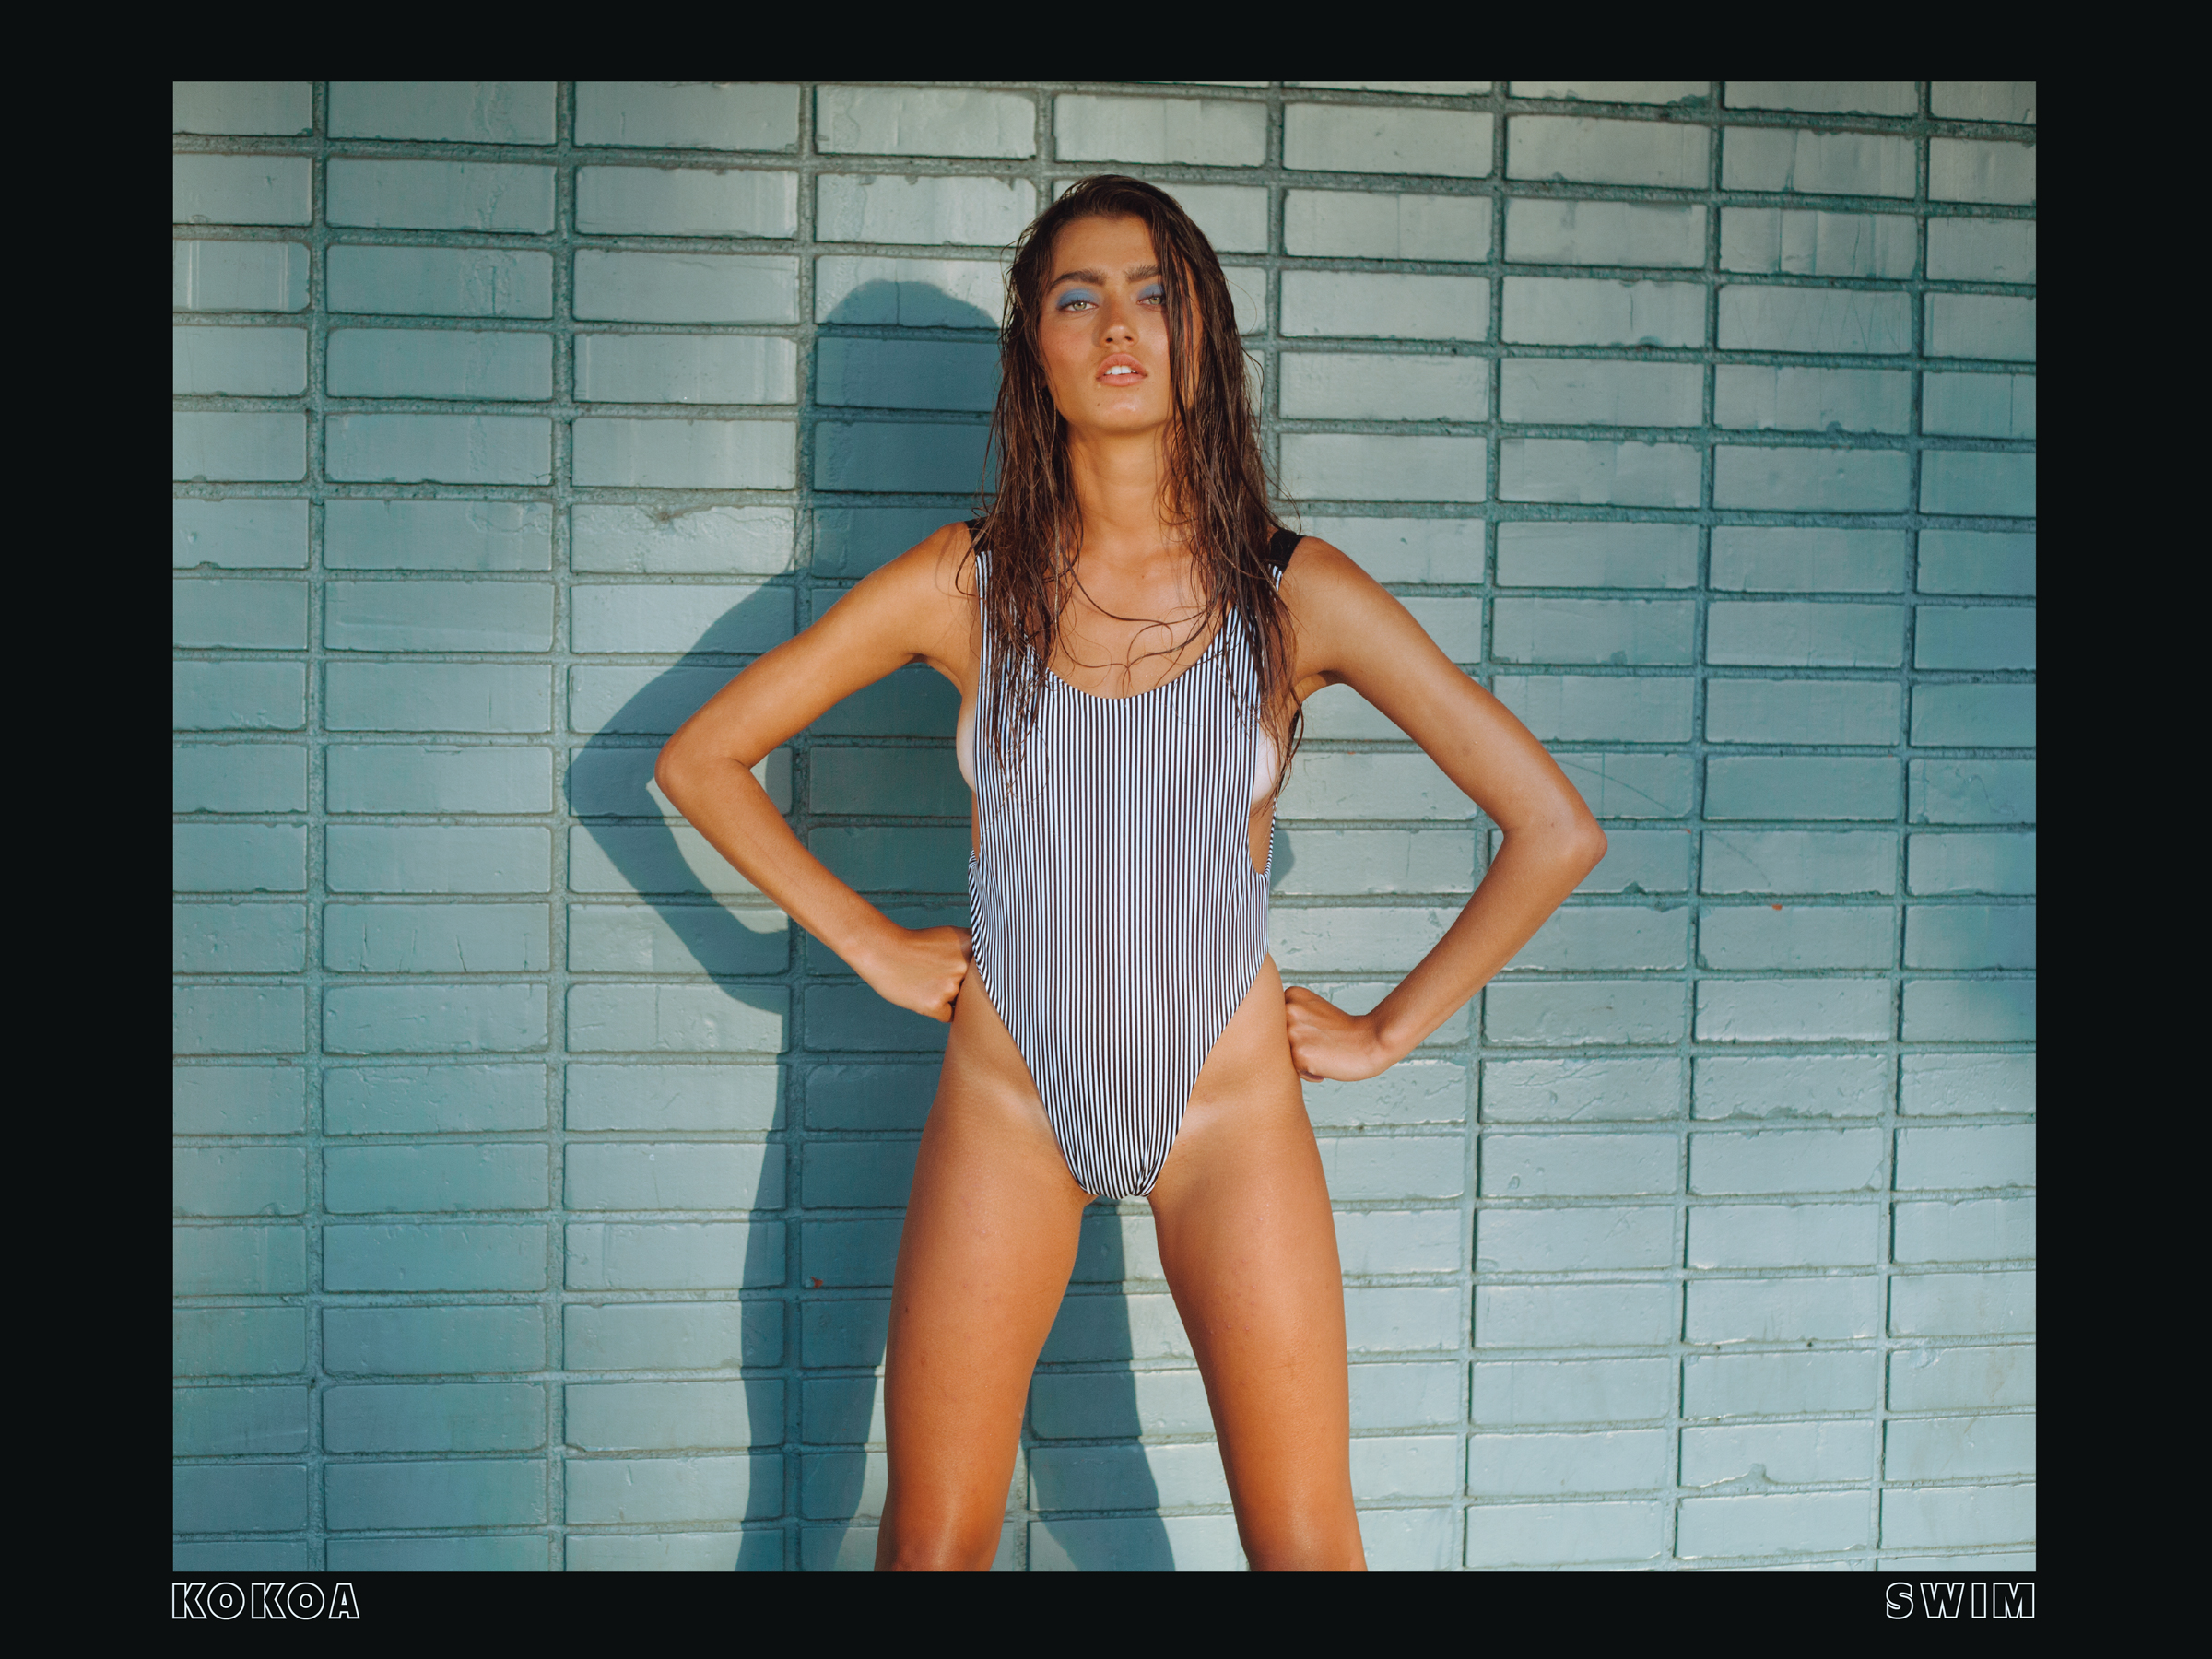 Lookbook design for Kokoa Swim brand, shot in Californina, 2/10